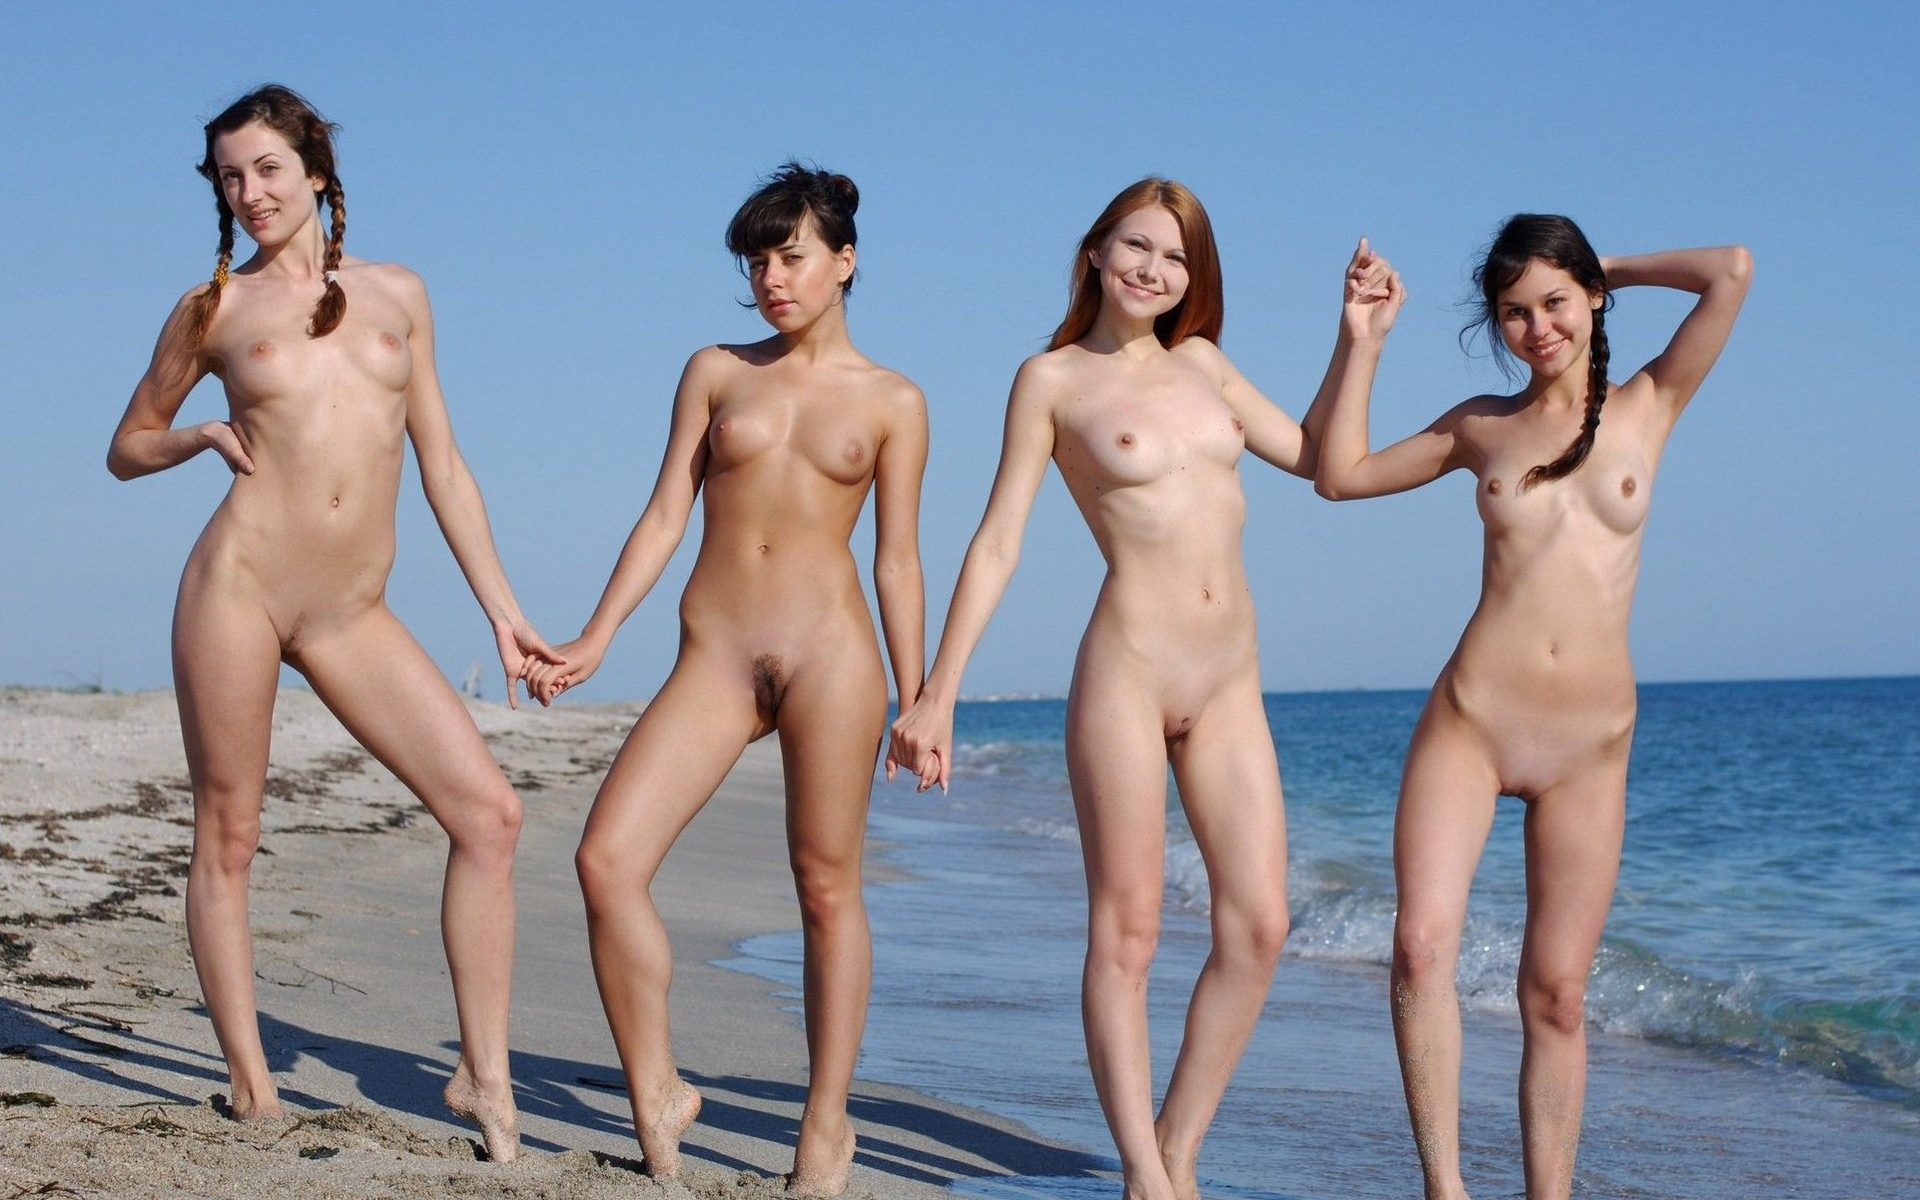 Female nudist personals 14